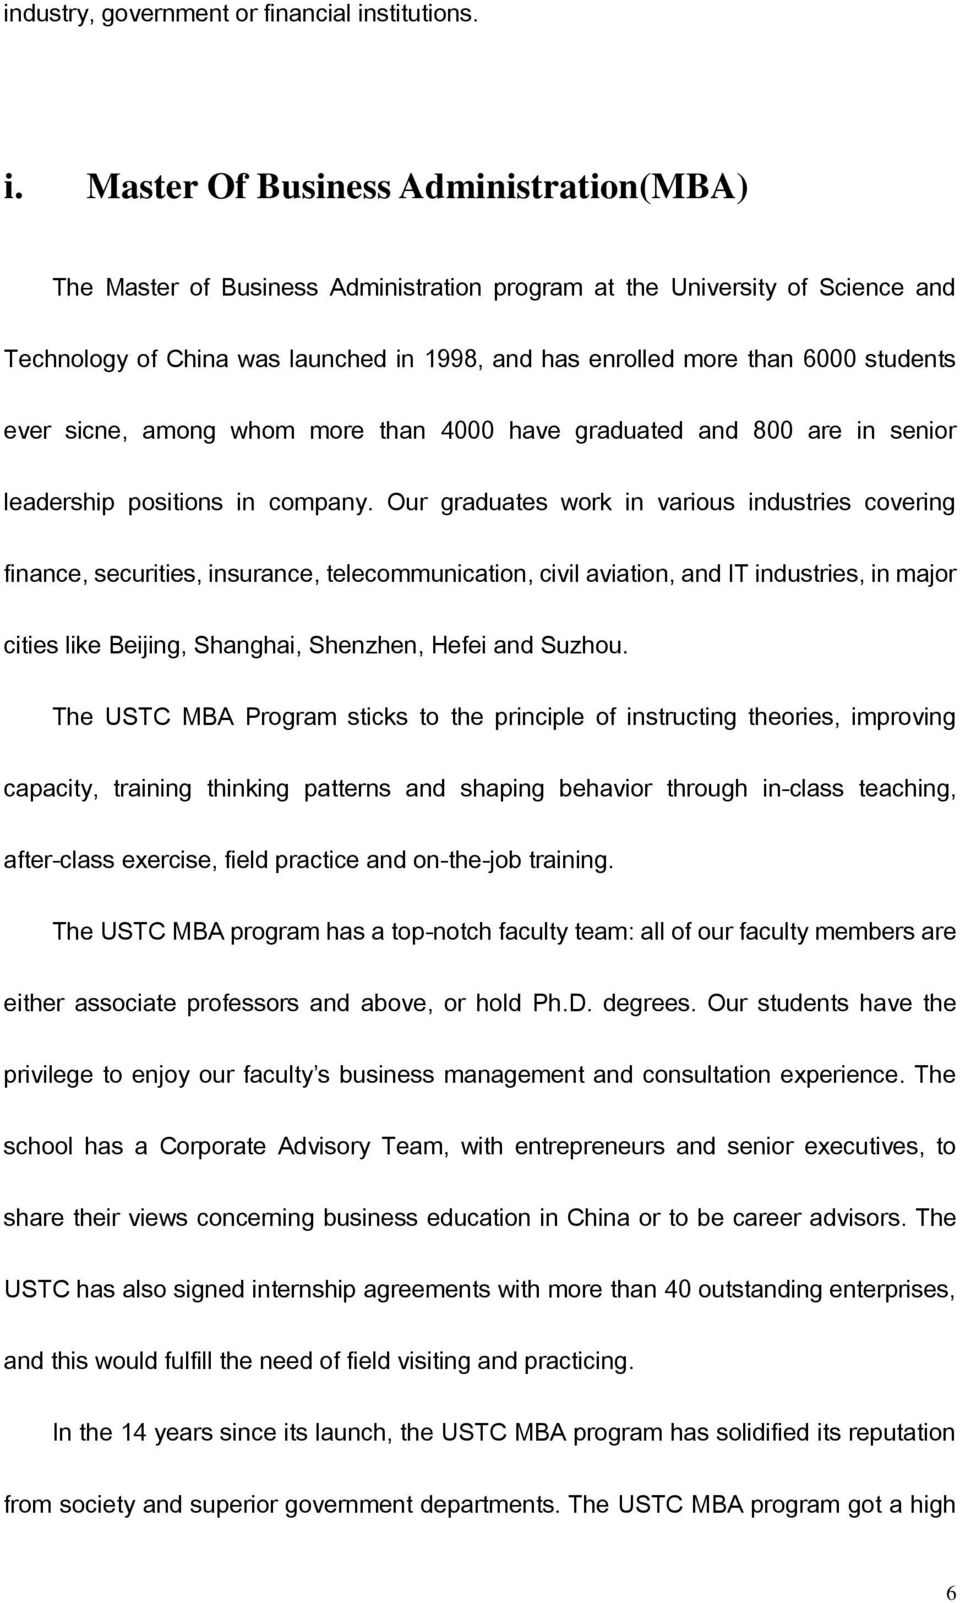 Master Of Business Administration(MBA) The Master of Business Administration program at the University of Science and Technology of China was launched in 1998, and has enrolled more than 6000